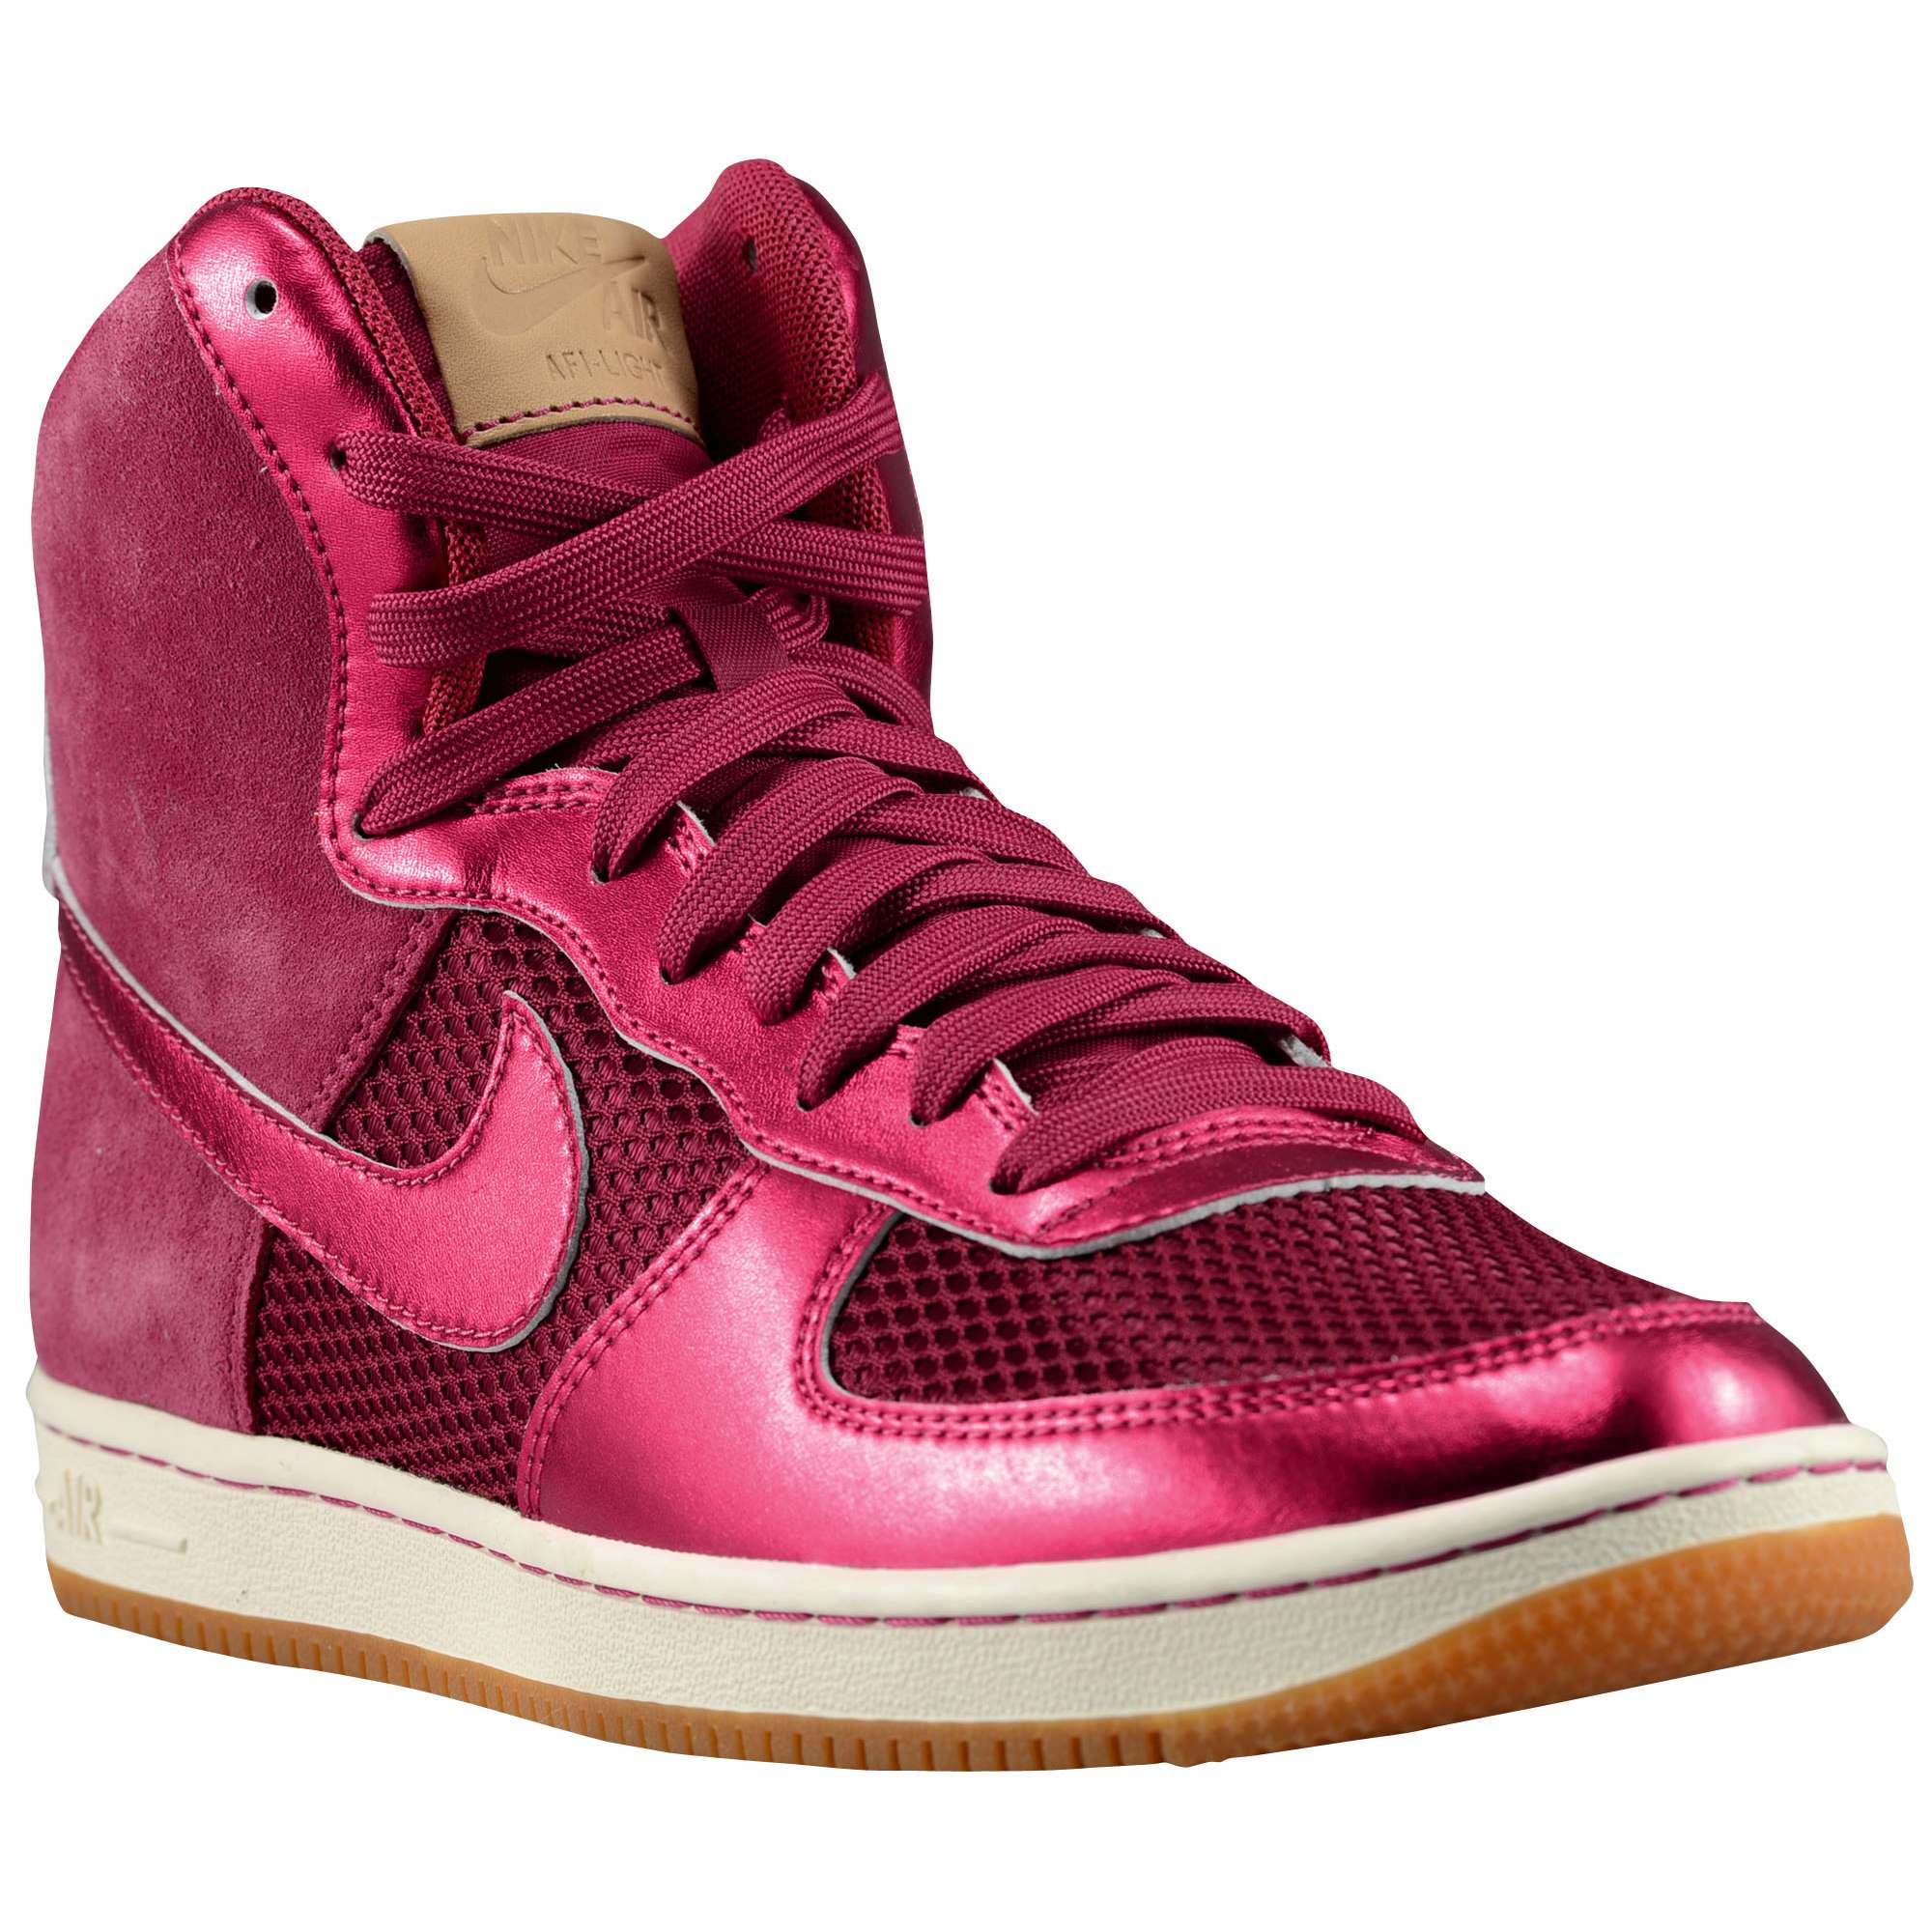 nike air force 1 light high womens rave pink. Black Bedroom Furniture Sets. Home Design Ideas